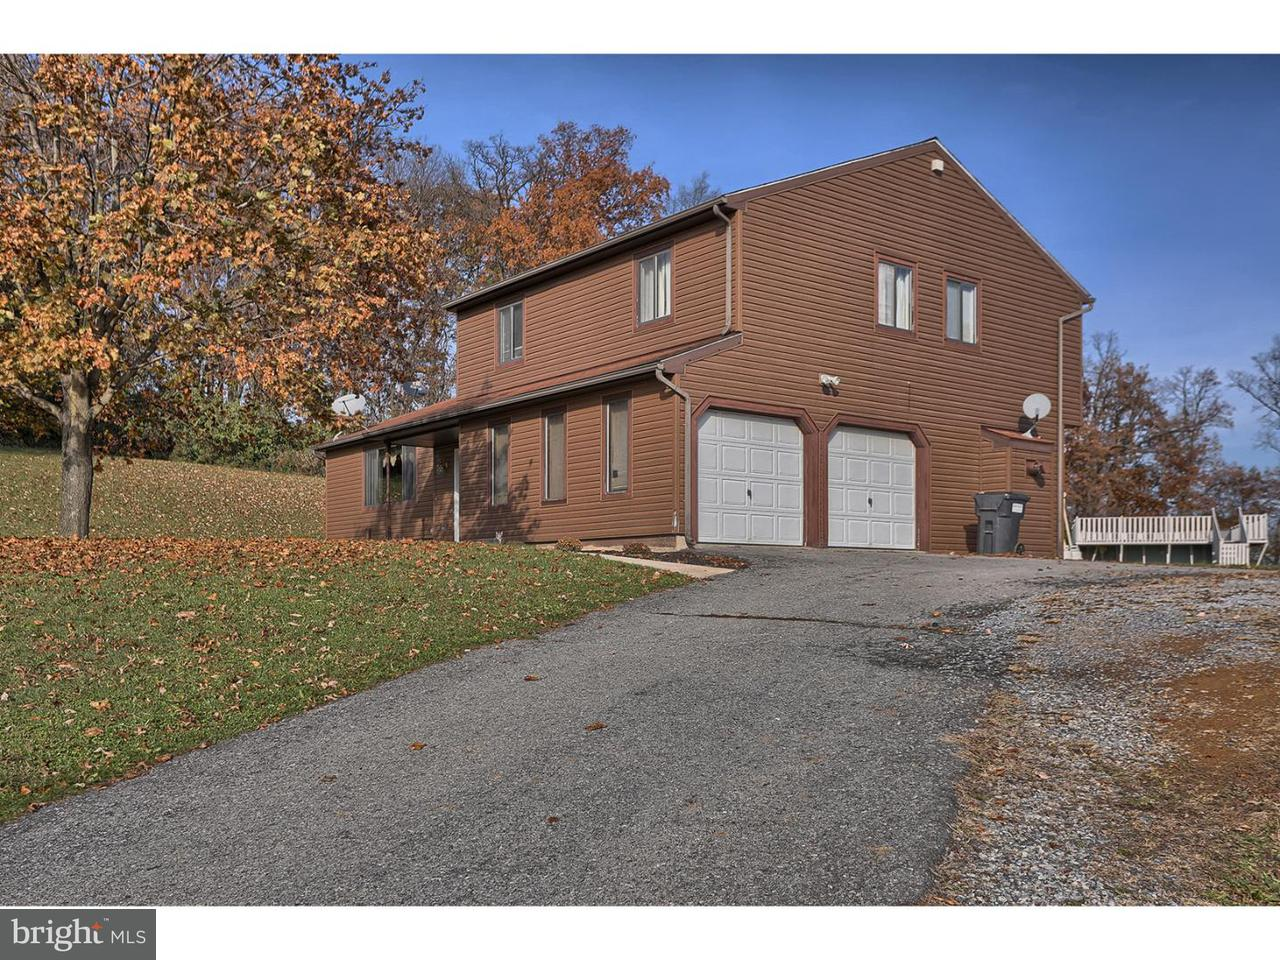 Single Family Home for Sale at 606 CORNERSTONE Drive Mohrsville, Pennsylvania 19541 United States